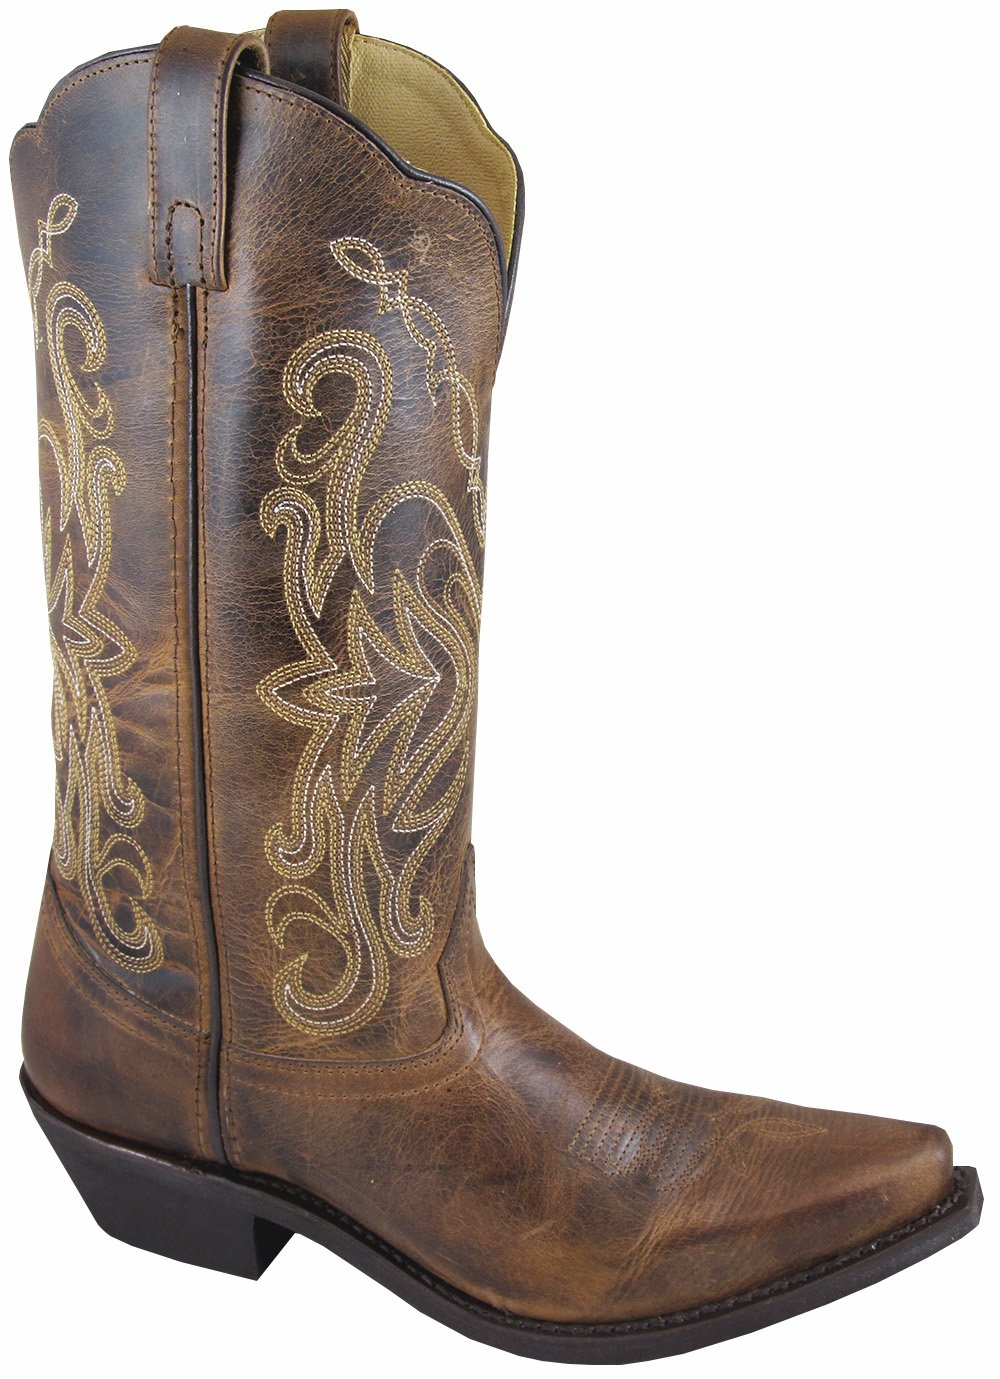 Smoky Mountain Boots Women's Western Snip Toe Cowboy Madison Red B00NI4JJLG 11|Distressed Brown